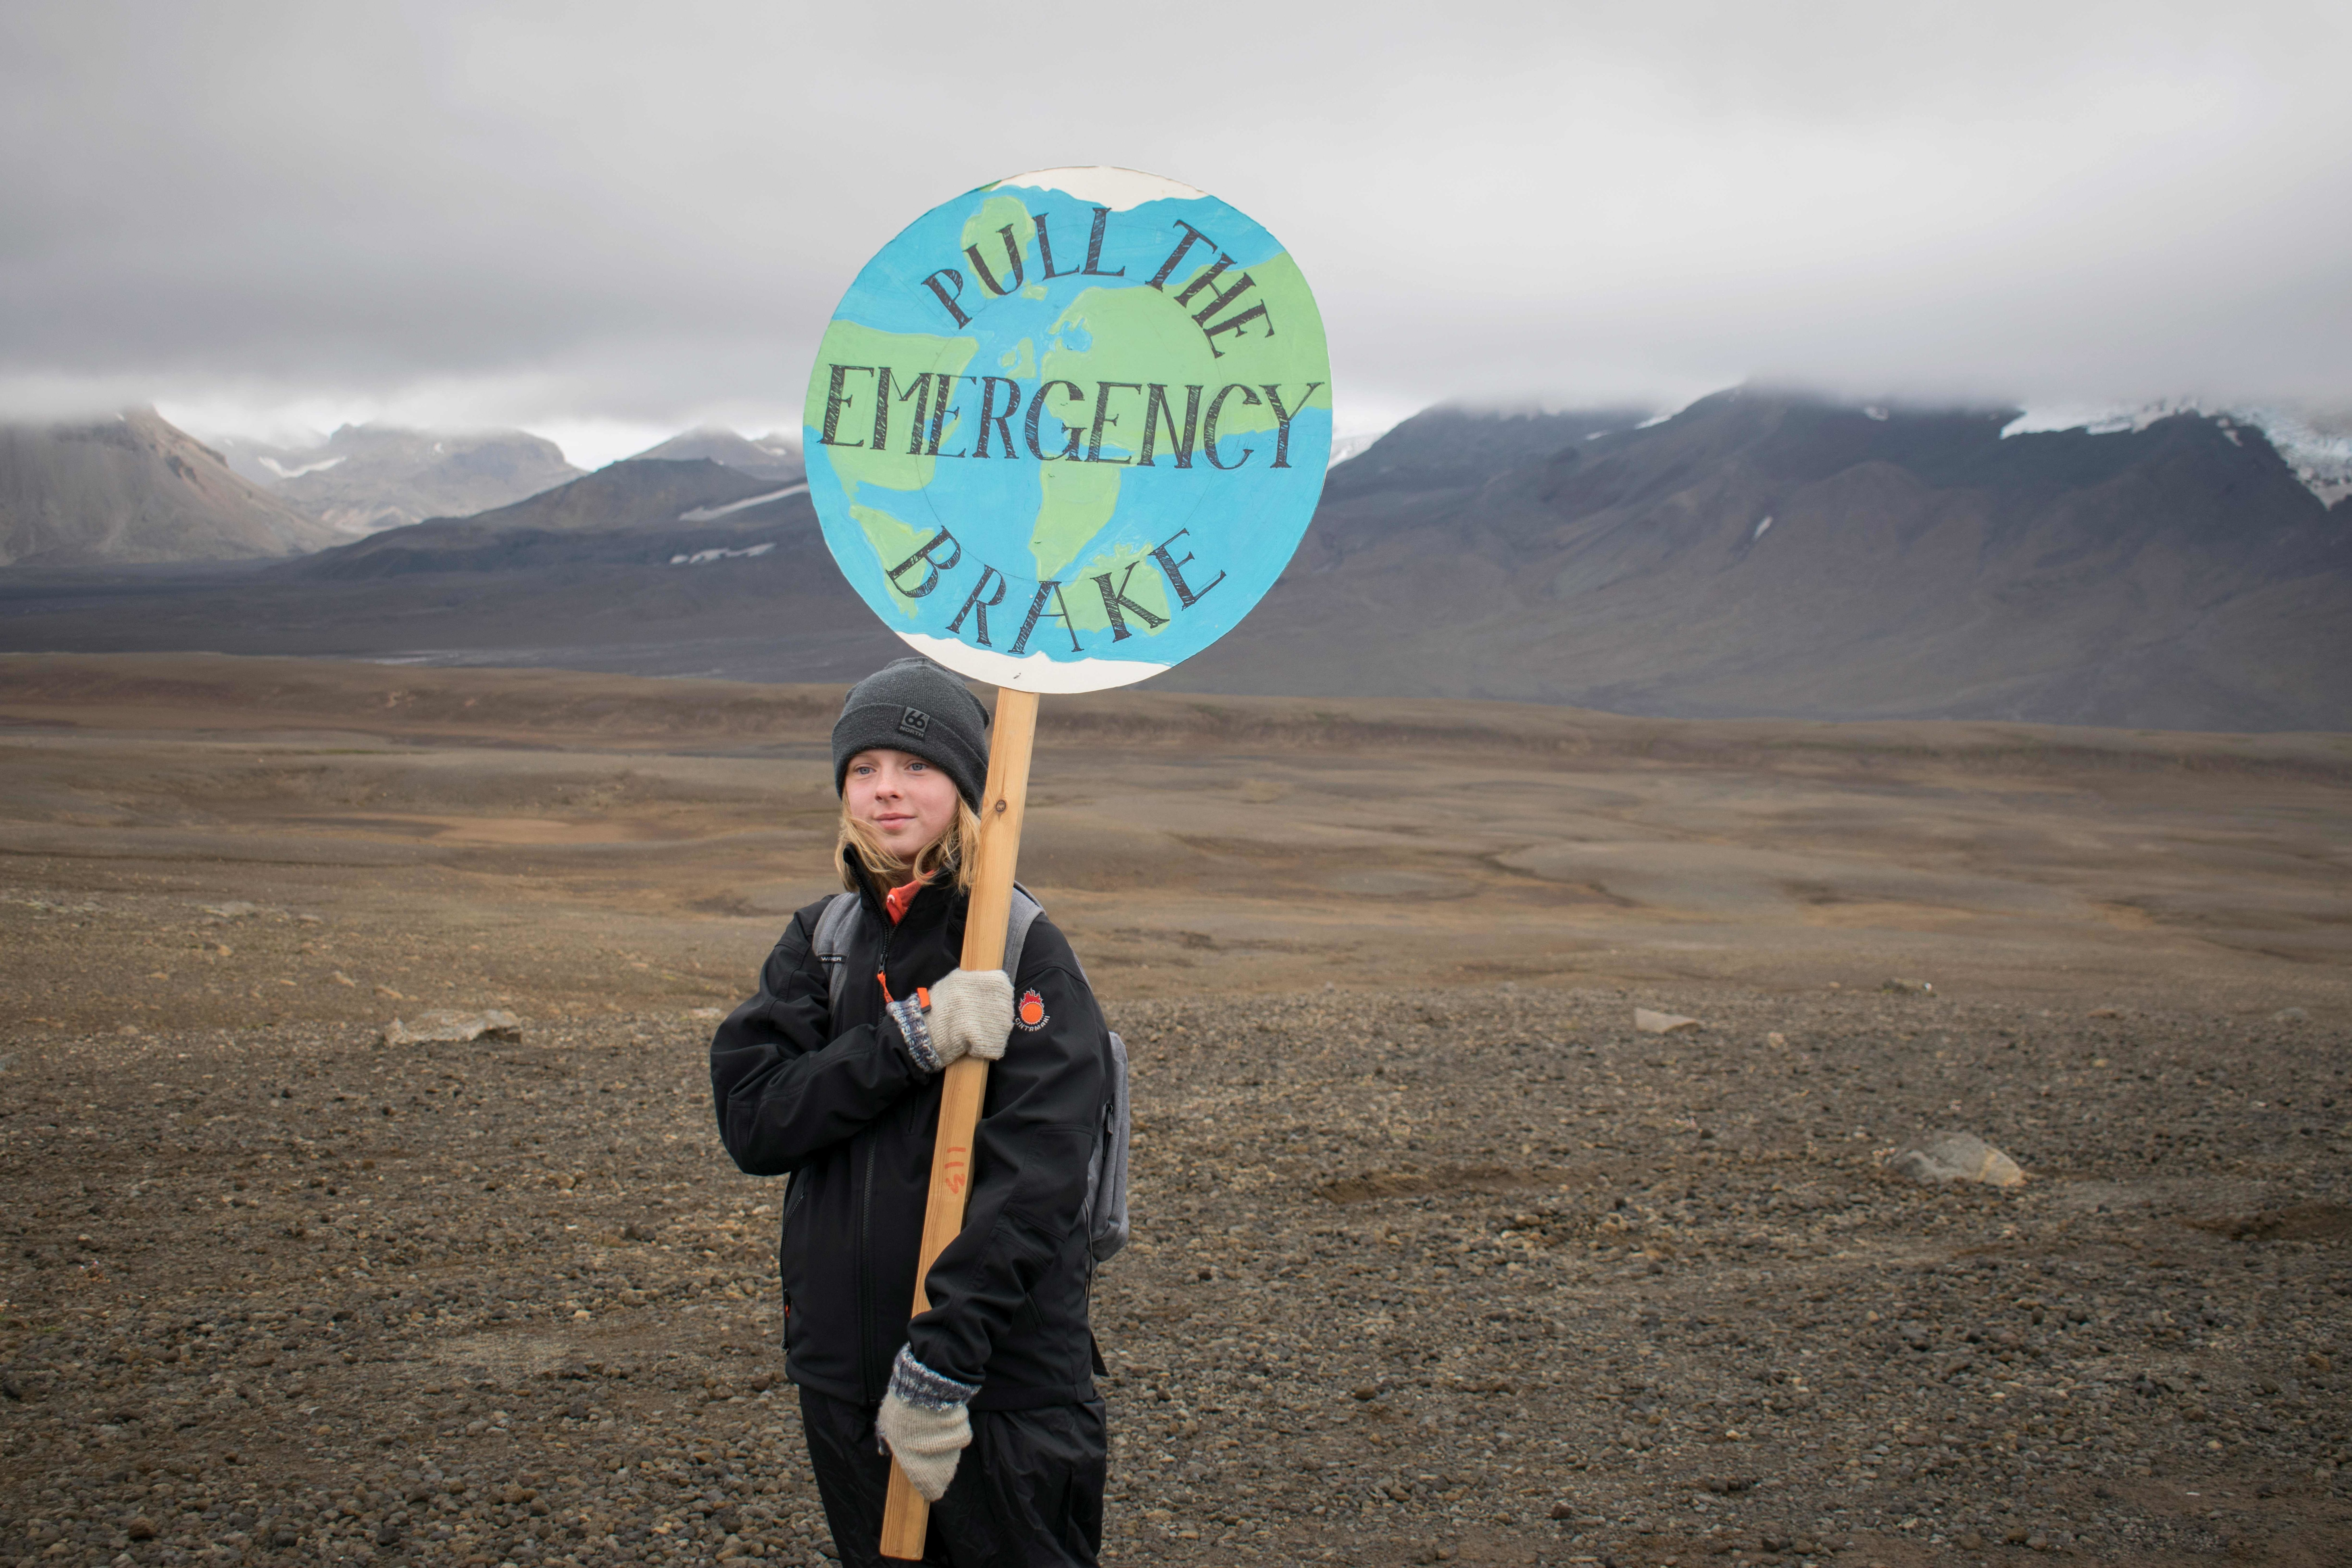 "TOPSHOT - An Icelandic girl poses for a photo with a ""Pull the emergency brake"" sign near to where a monument was unveiled at the site of Okjokull, Iceland's first glacier lost to climate change in the west of Iceland on August 18, 2019. (Photo by Jeremie RICHARD / AFP) (Photo credit should read JEREMIE RICHARD/AFP/Getty Images)"